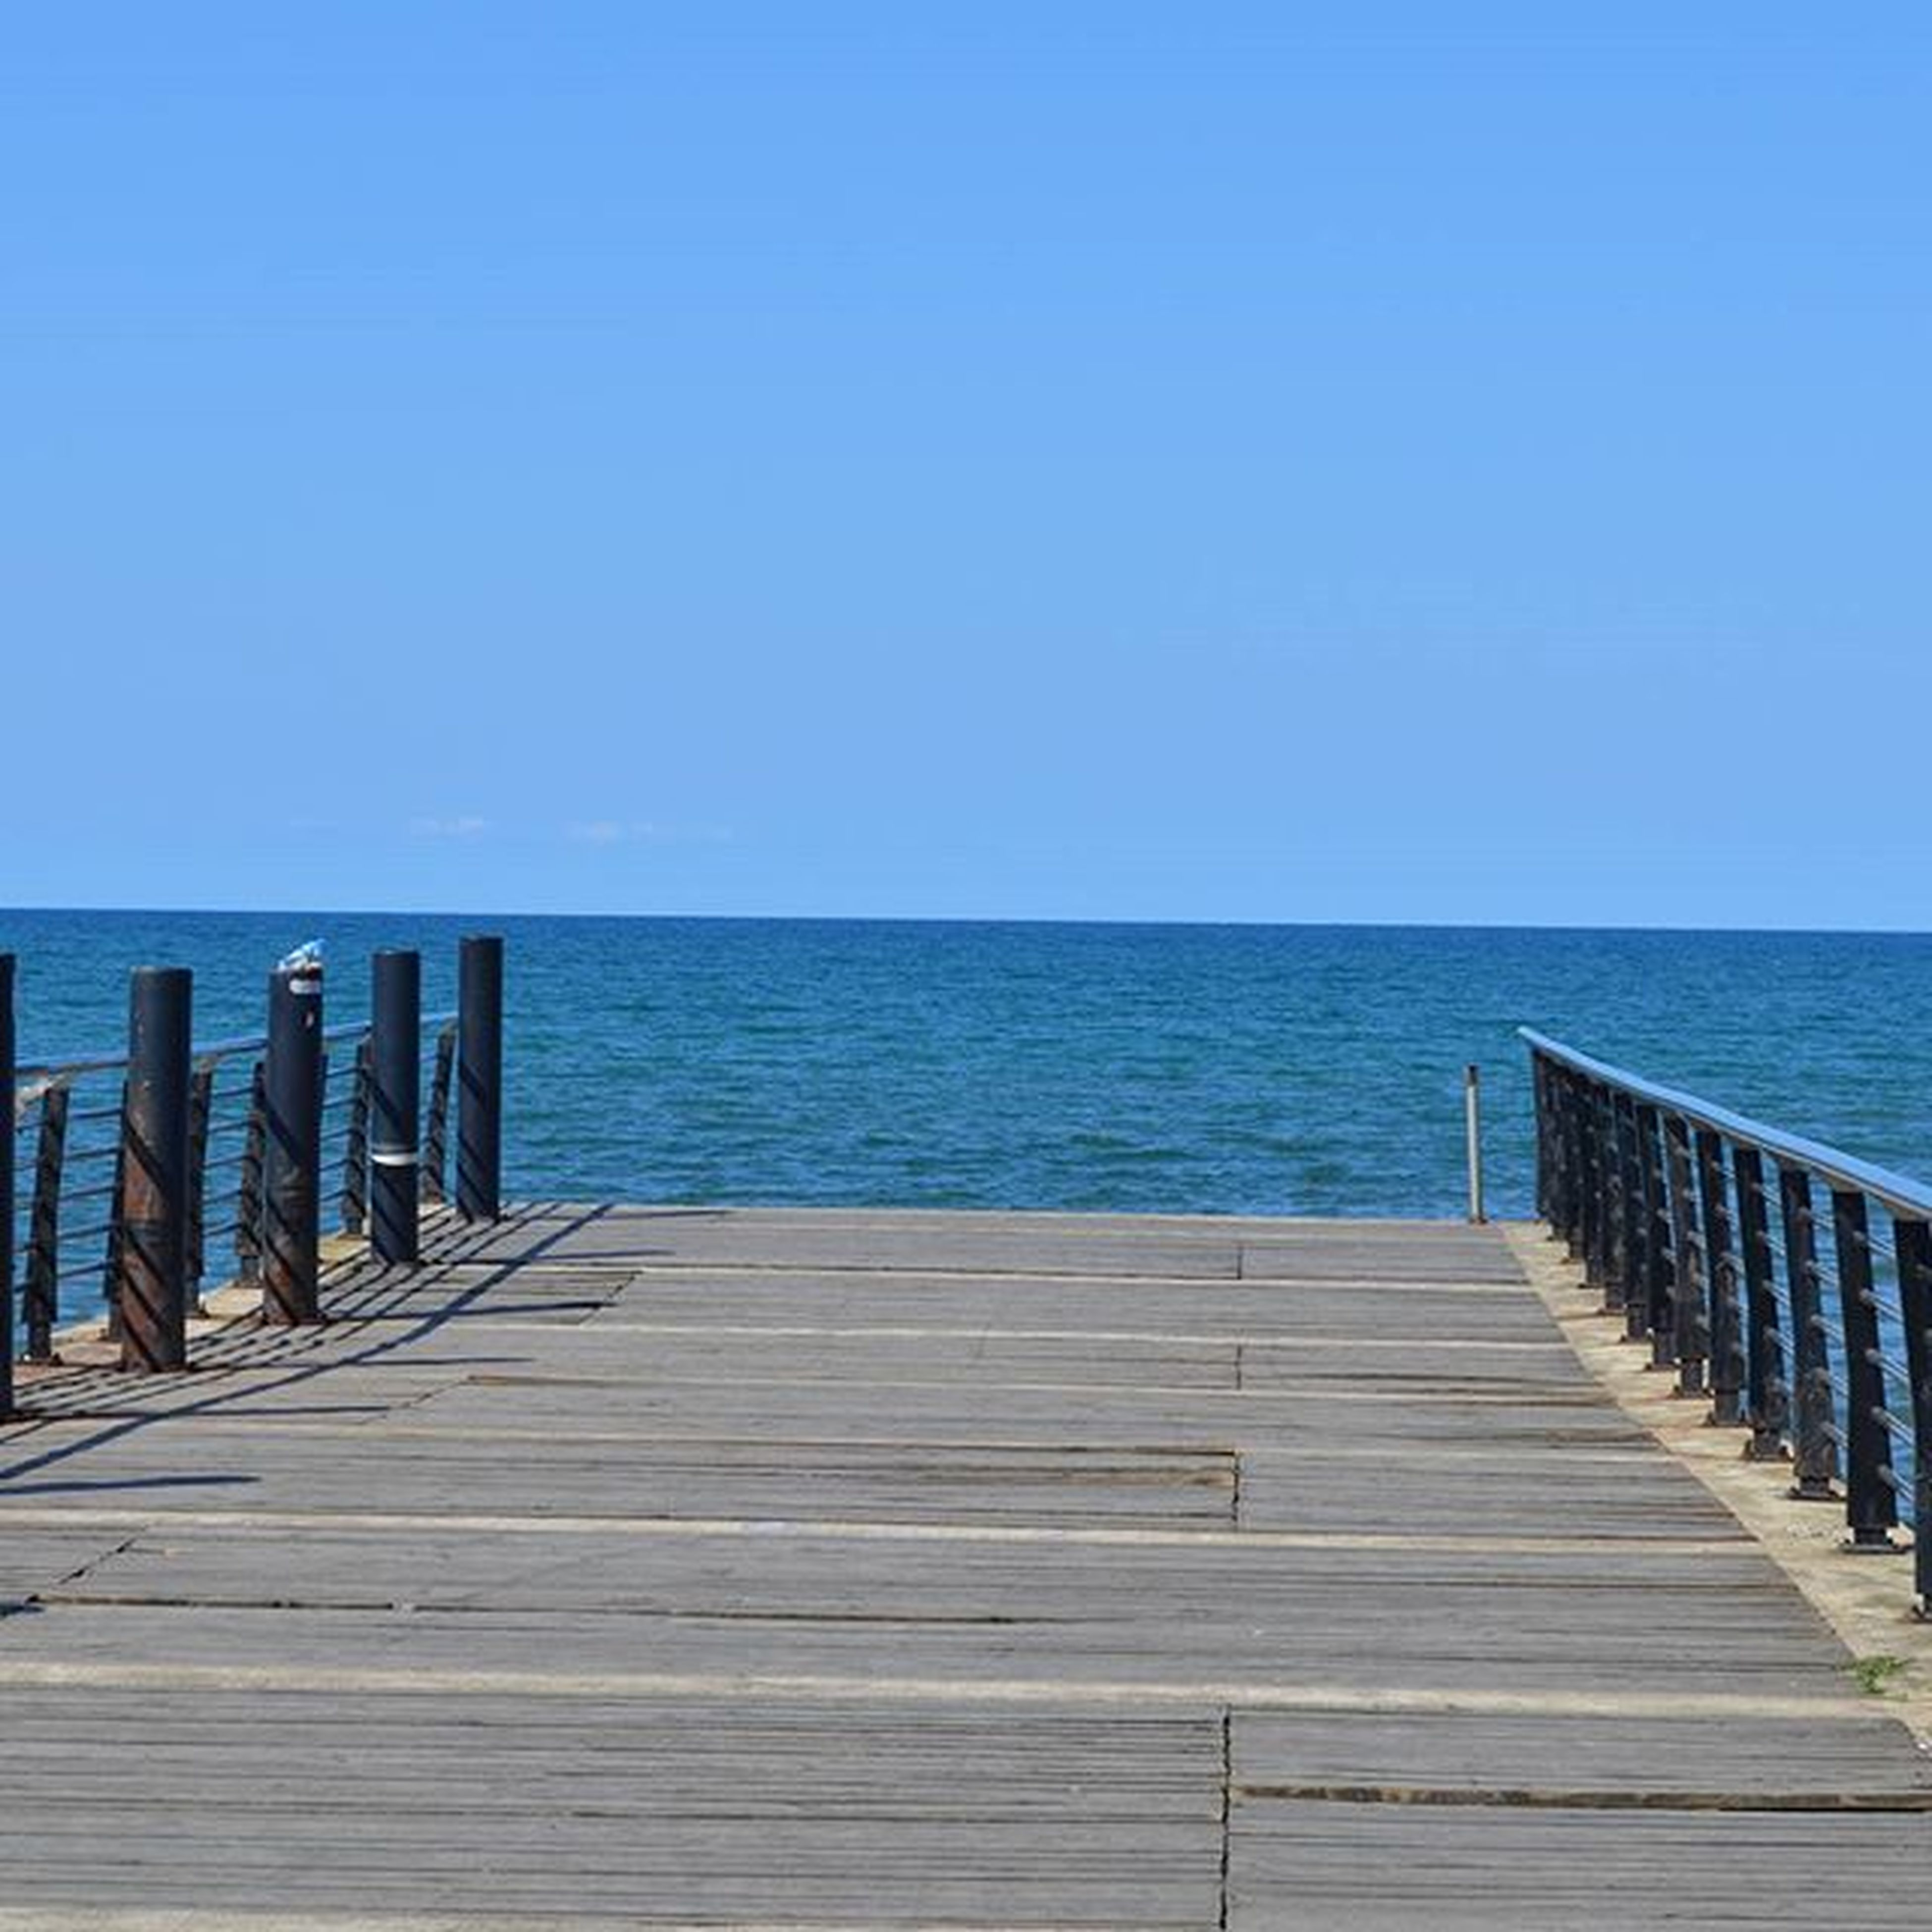 sea, water, horizon over water, clear sky, pier, blue, tranquil scene, tranquility, copy space, scenics, railing, wood - material, beauty in nature, jetty, nature, boardwalk, idyllic, wood, ocean, the way forward